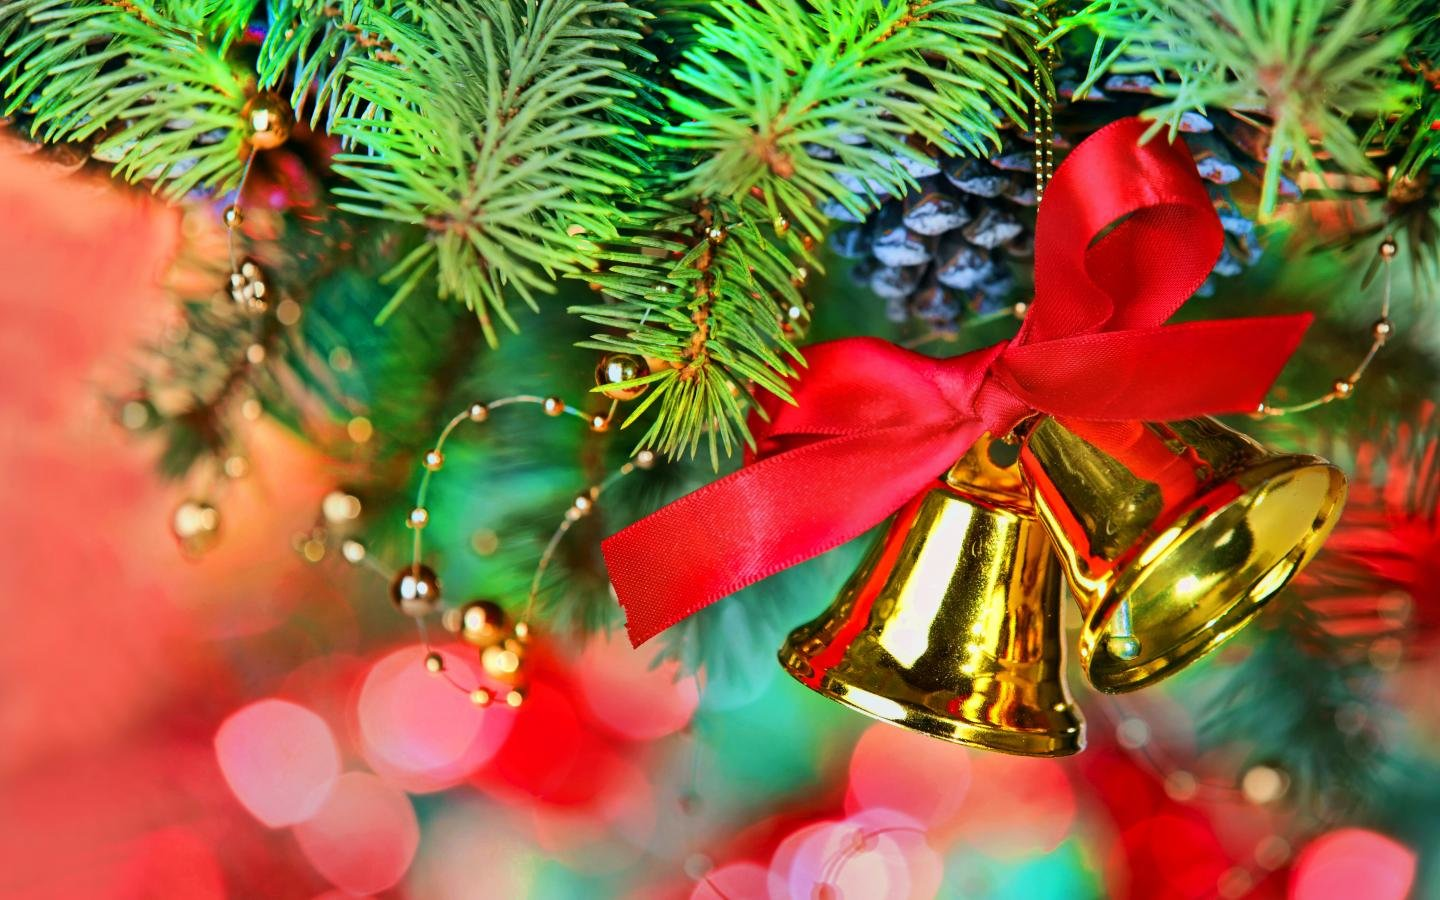 best christmas ornamentsdecorations background id436216 for high resolution hd 1440x900 pc